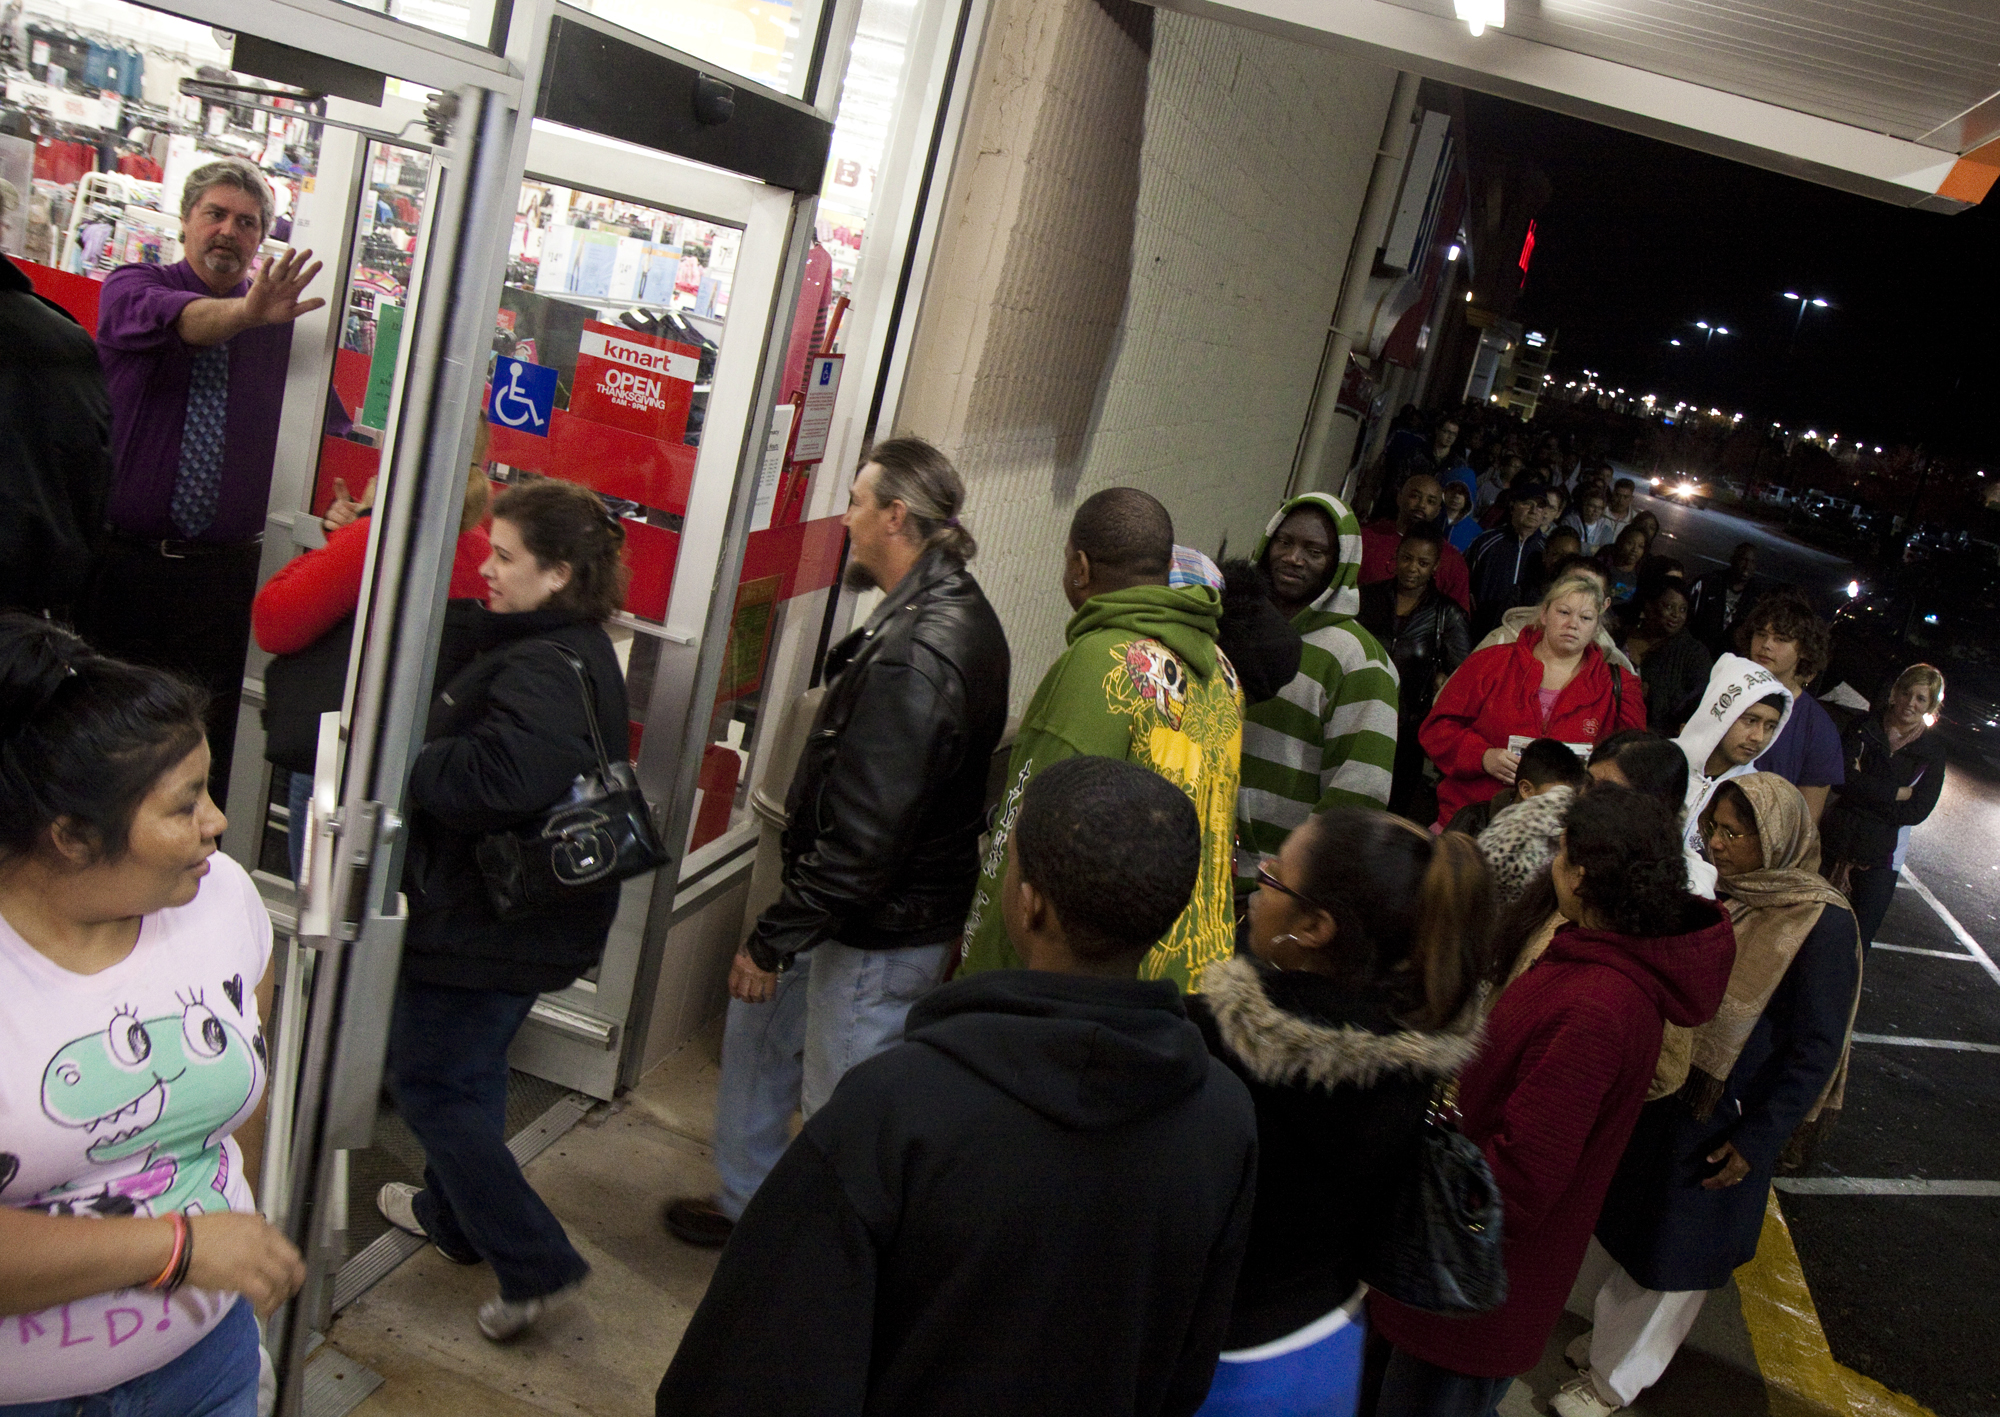 A Big Kmart manager stops Black Friday shoppers from cutting in line as the store opens its doors at 5 a.m. The first shoppers arrived at 11:15 p.m. the night before to get deals on TVs and DVD players.